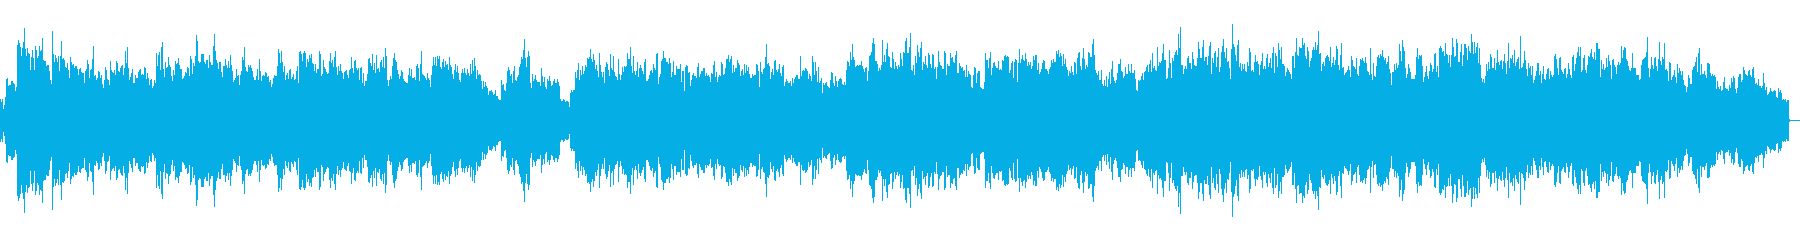 If you look up, it's precious (electric piano version)'s reproduced waveform